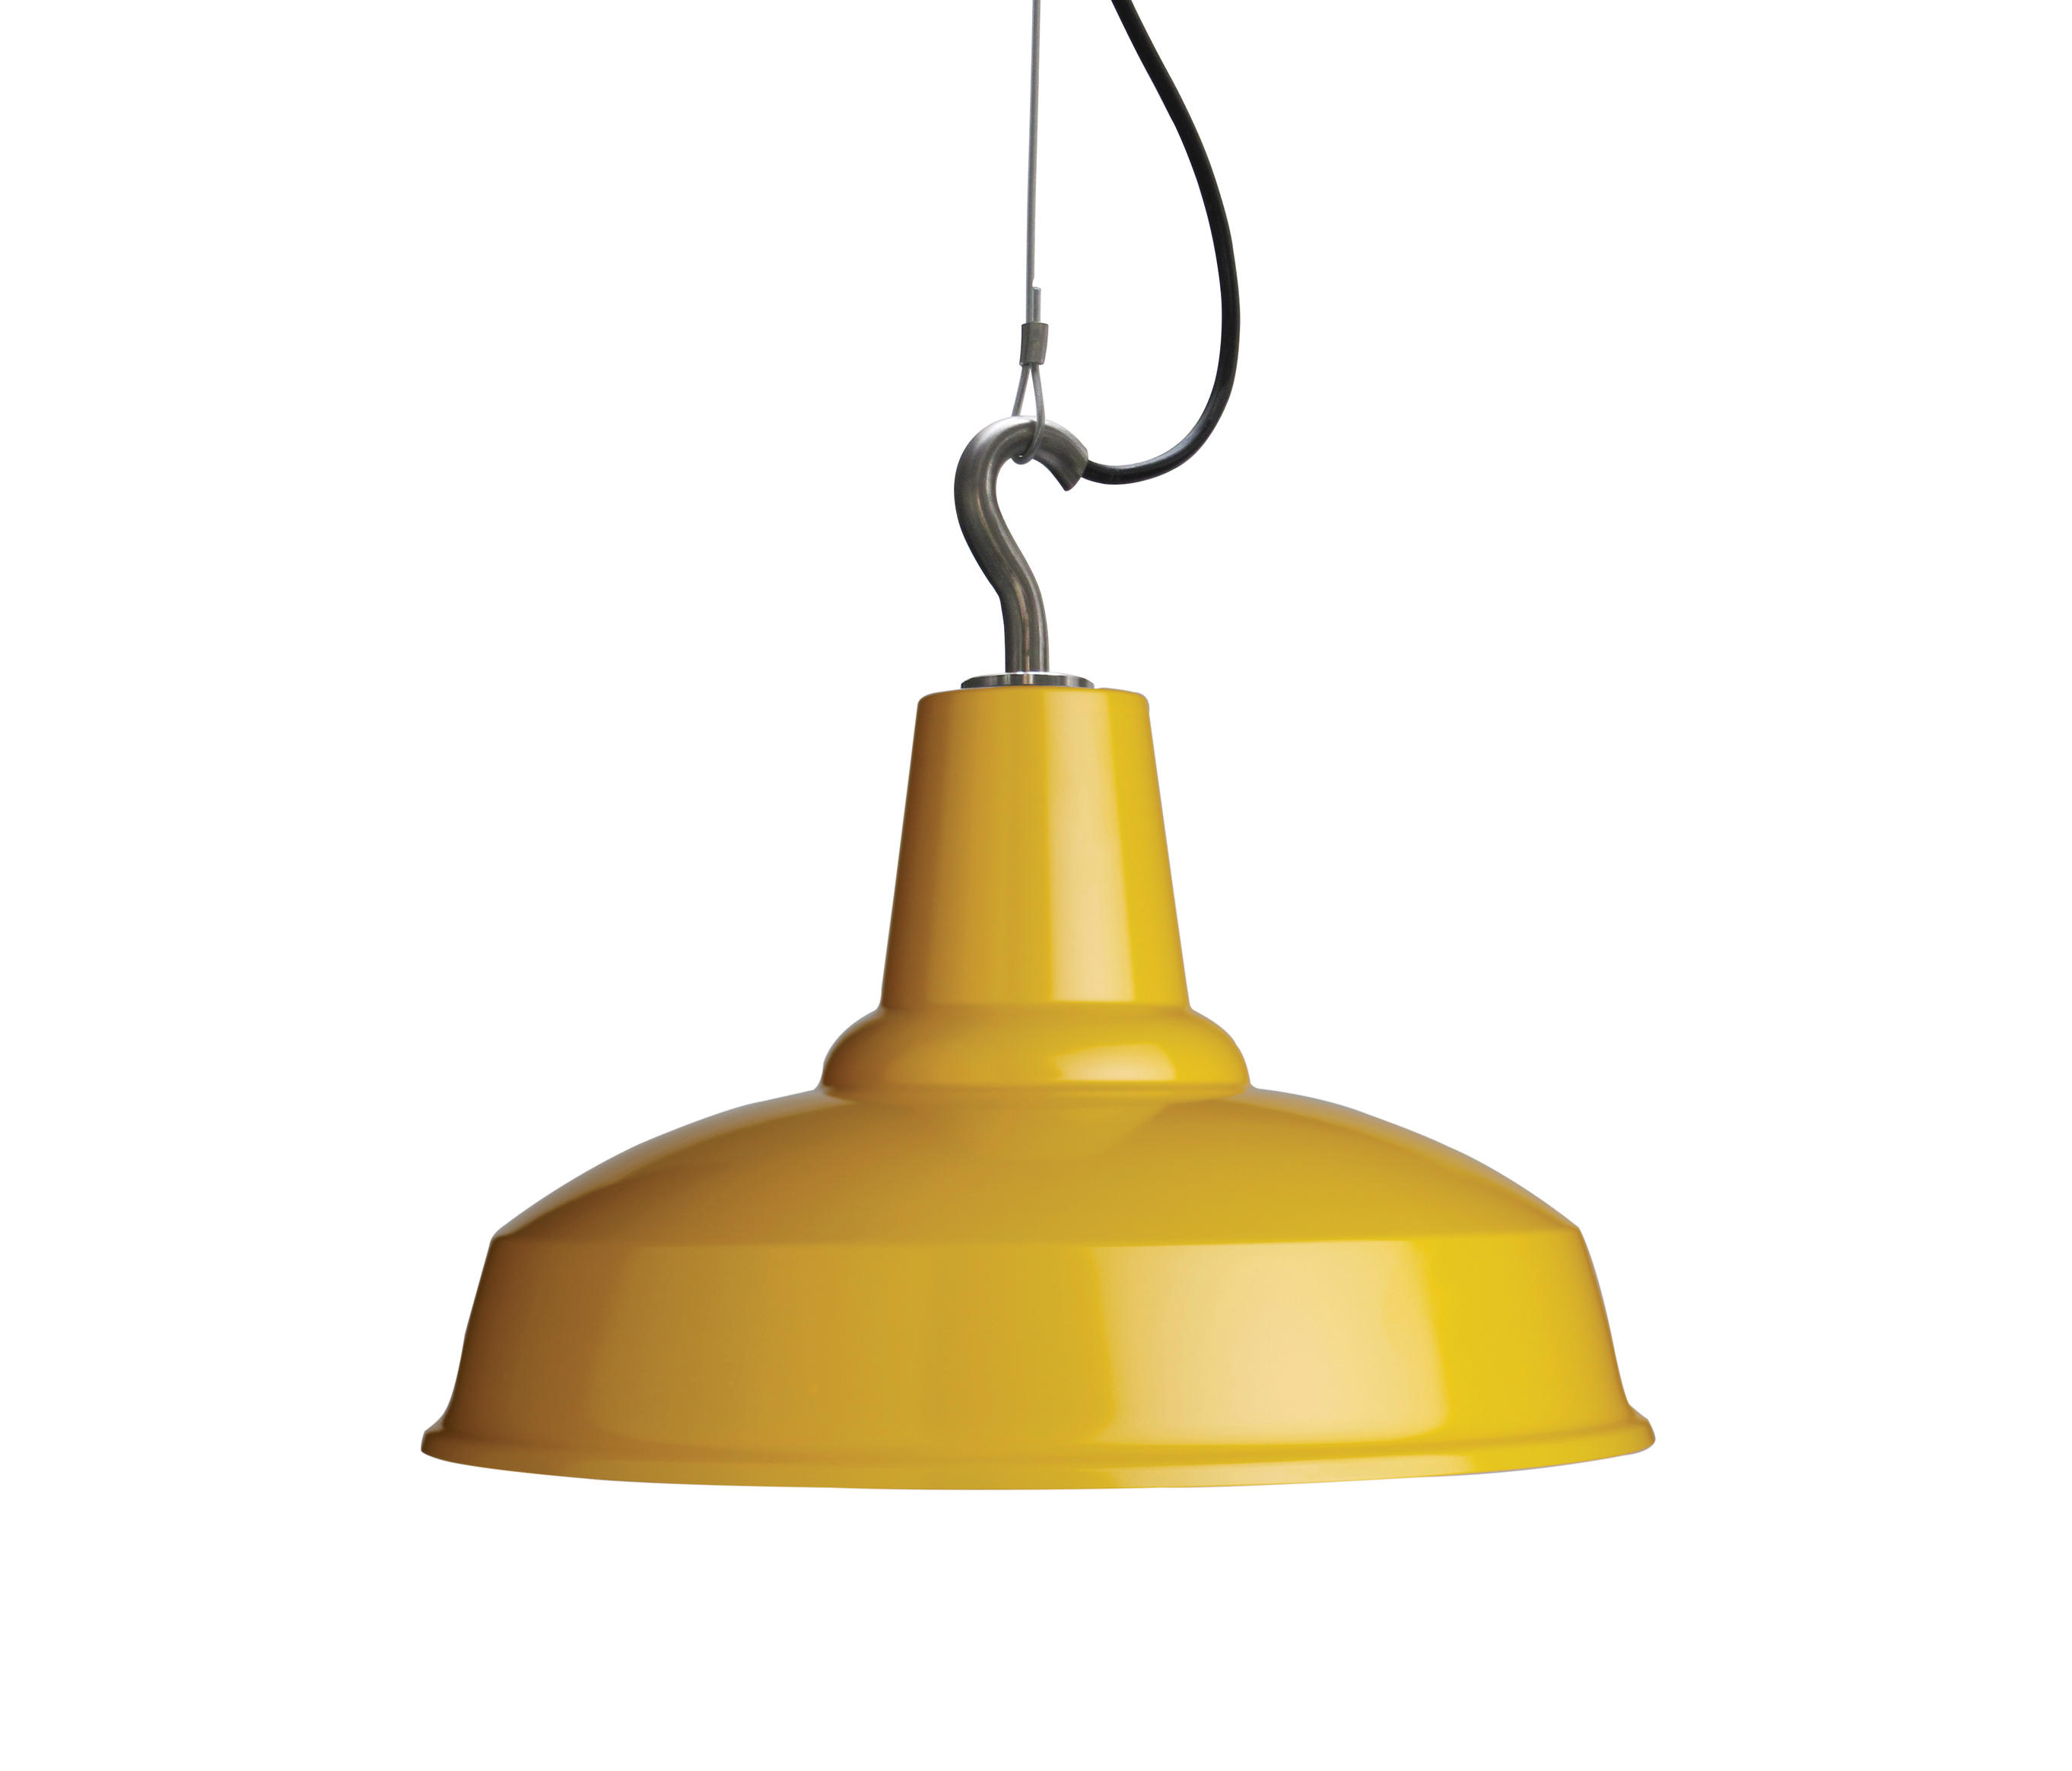 HOOK - General lighting from Eleanor Home | Architonic